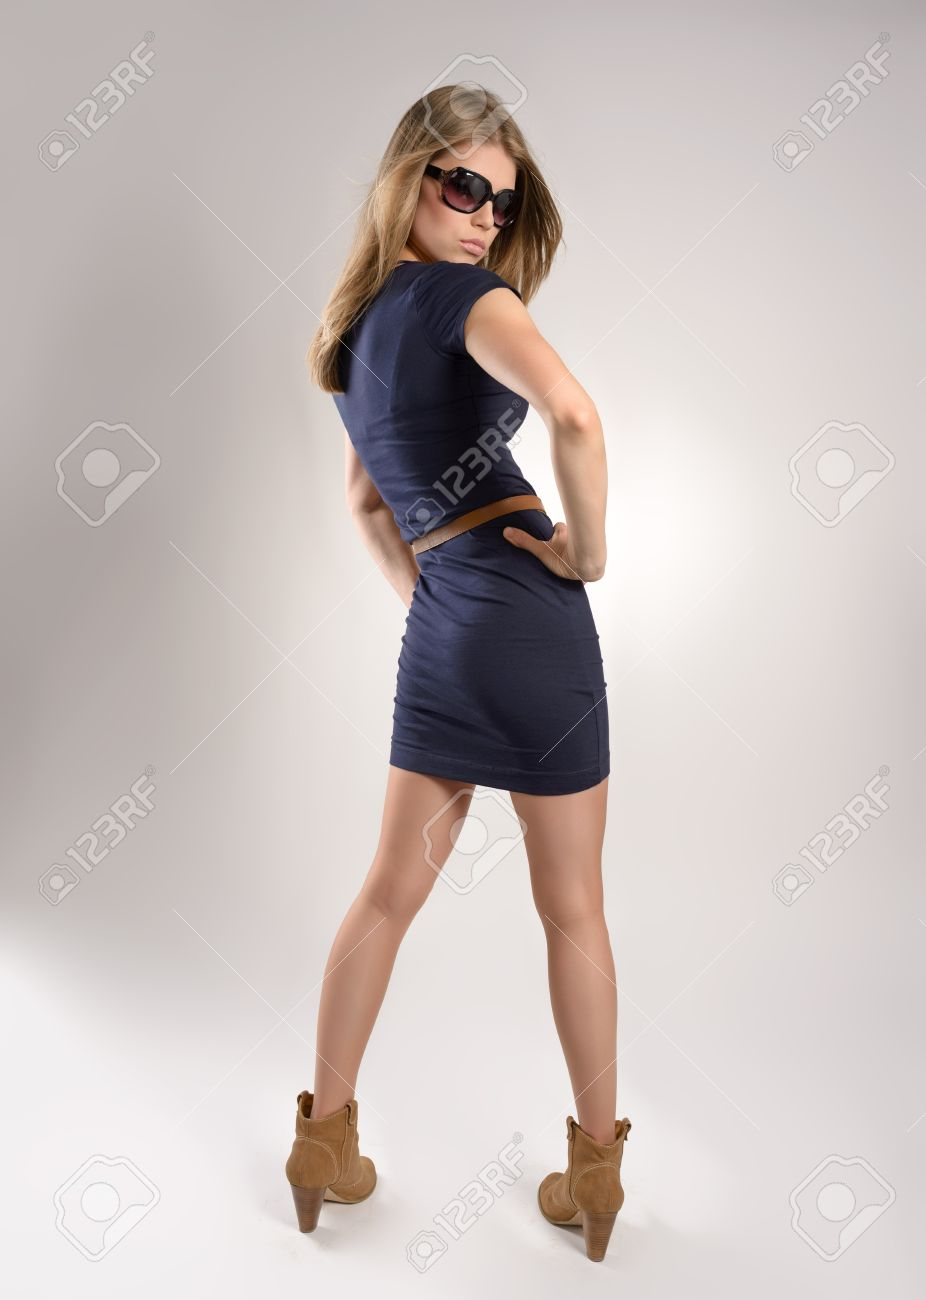 Shoot Of Fashion Girl In Sunglasses Dressed Stylishly Young